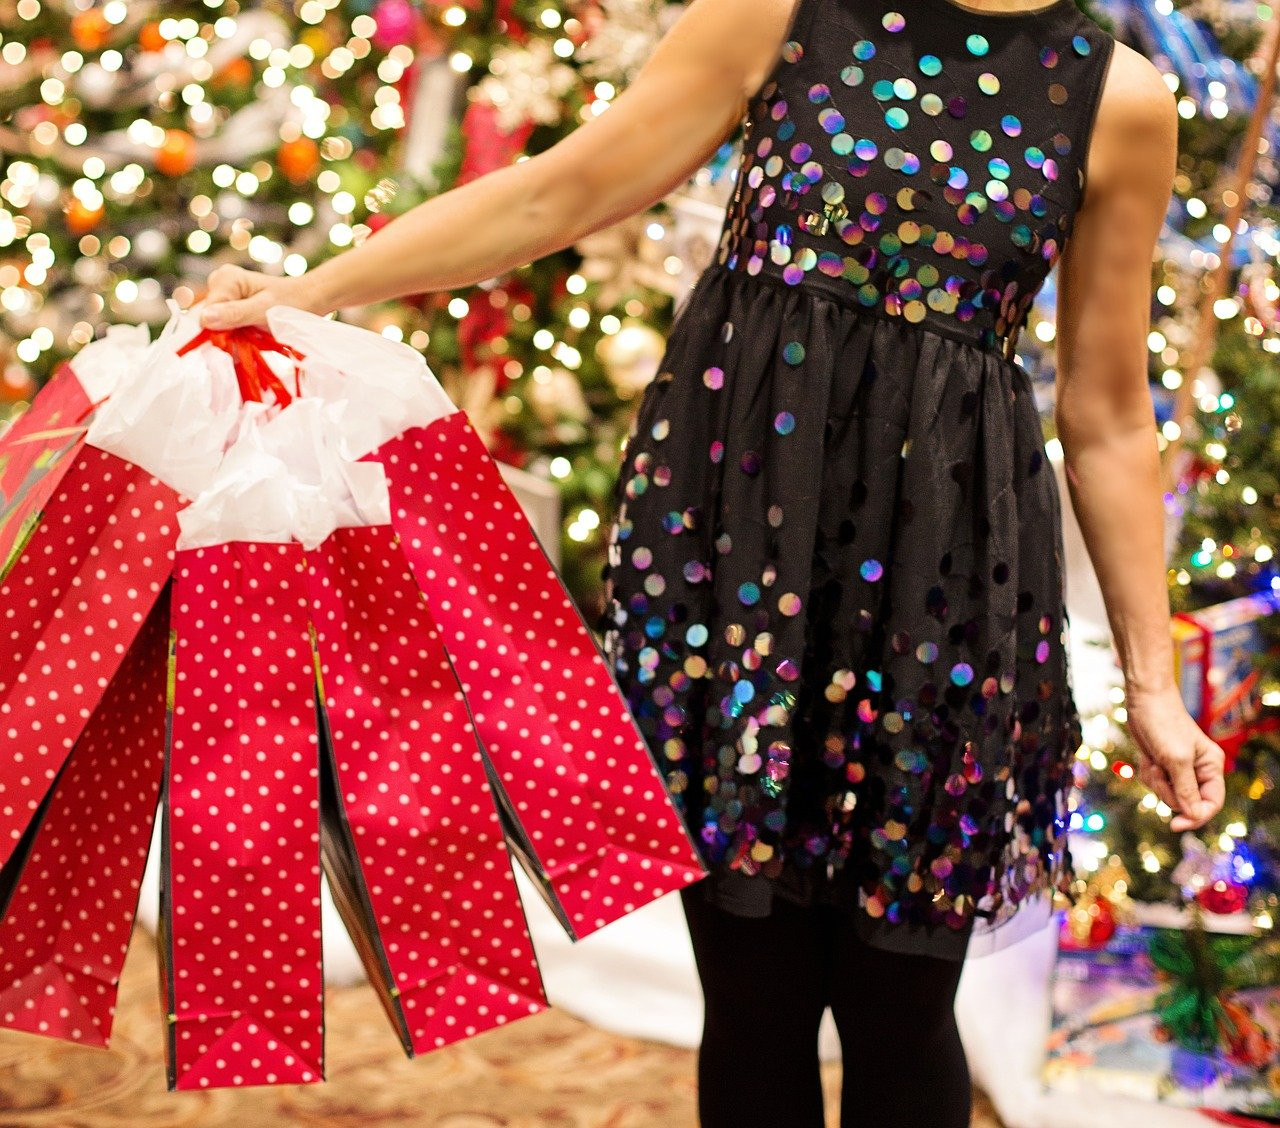 Plan specials, treats and events to lure in holiday shoppers.